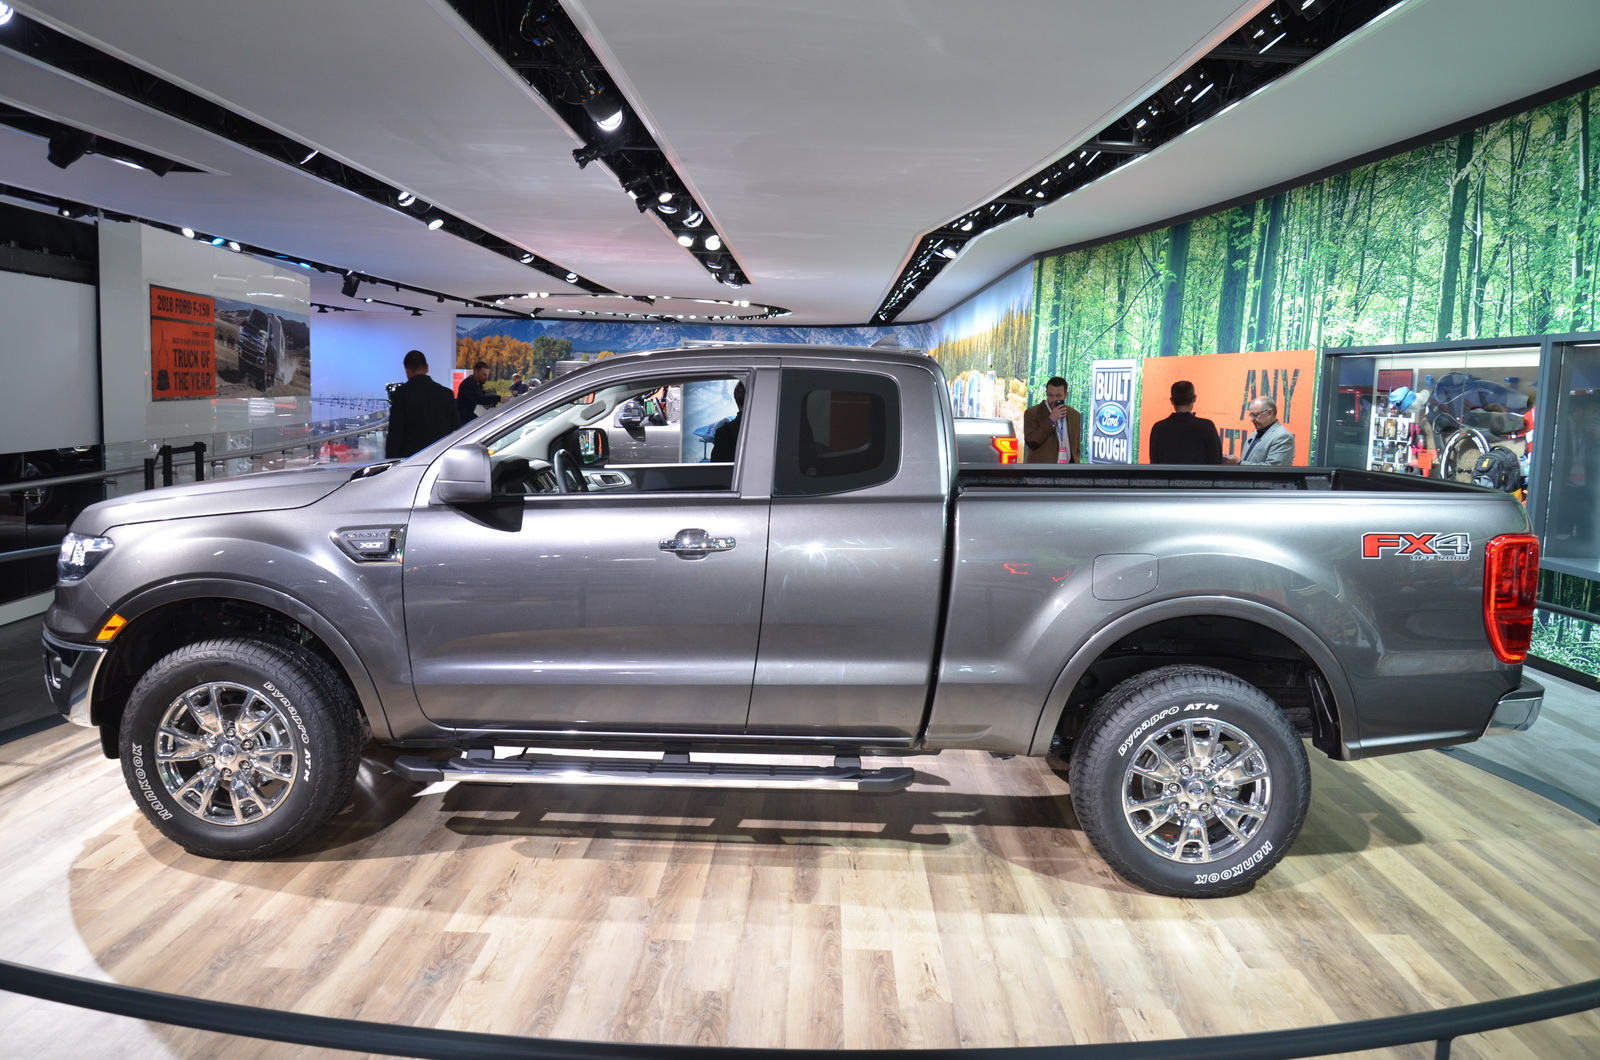 2019 ford ranger wants to become america s default midsize truck car news. Black Bedroom Furniture Sets. Home Design Ideas